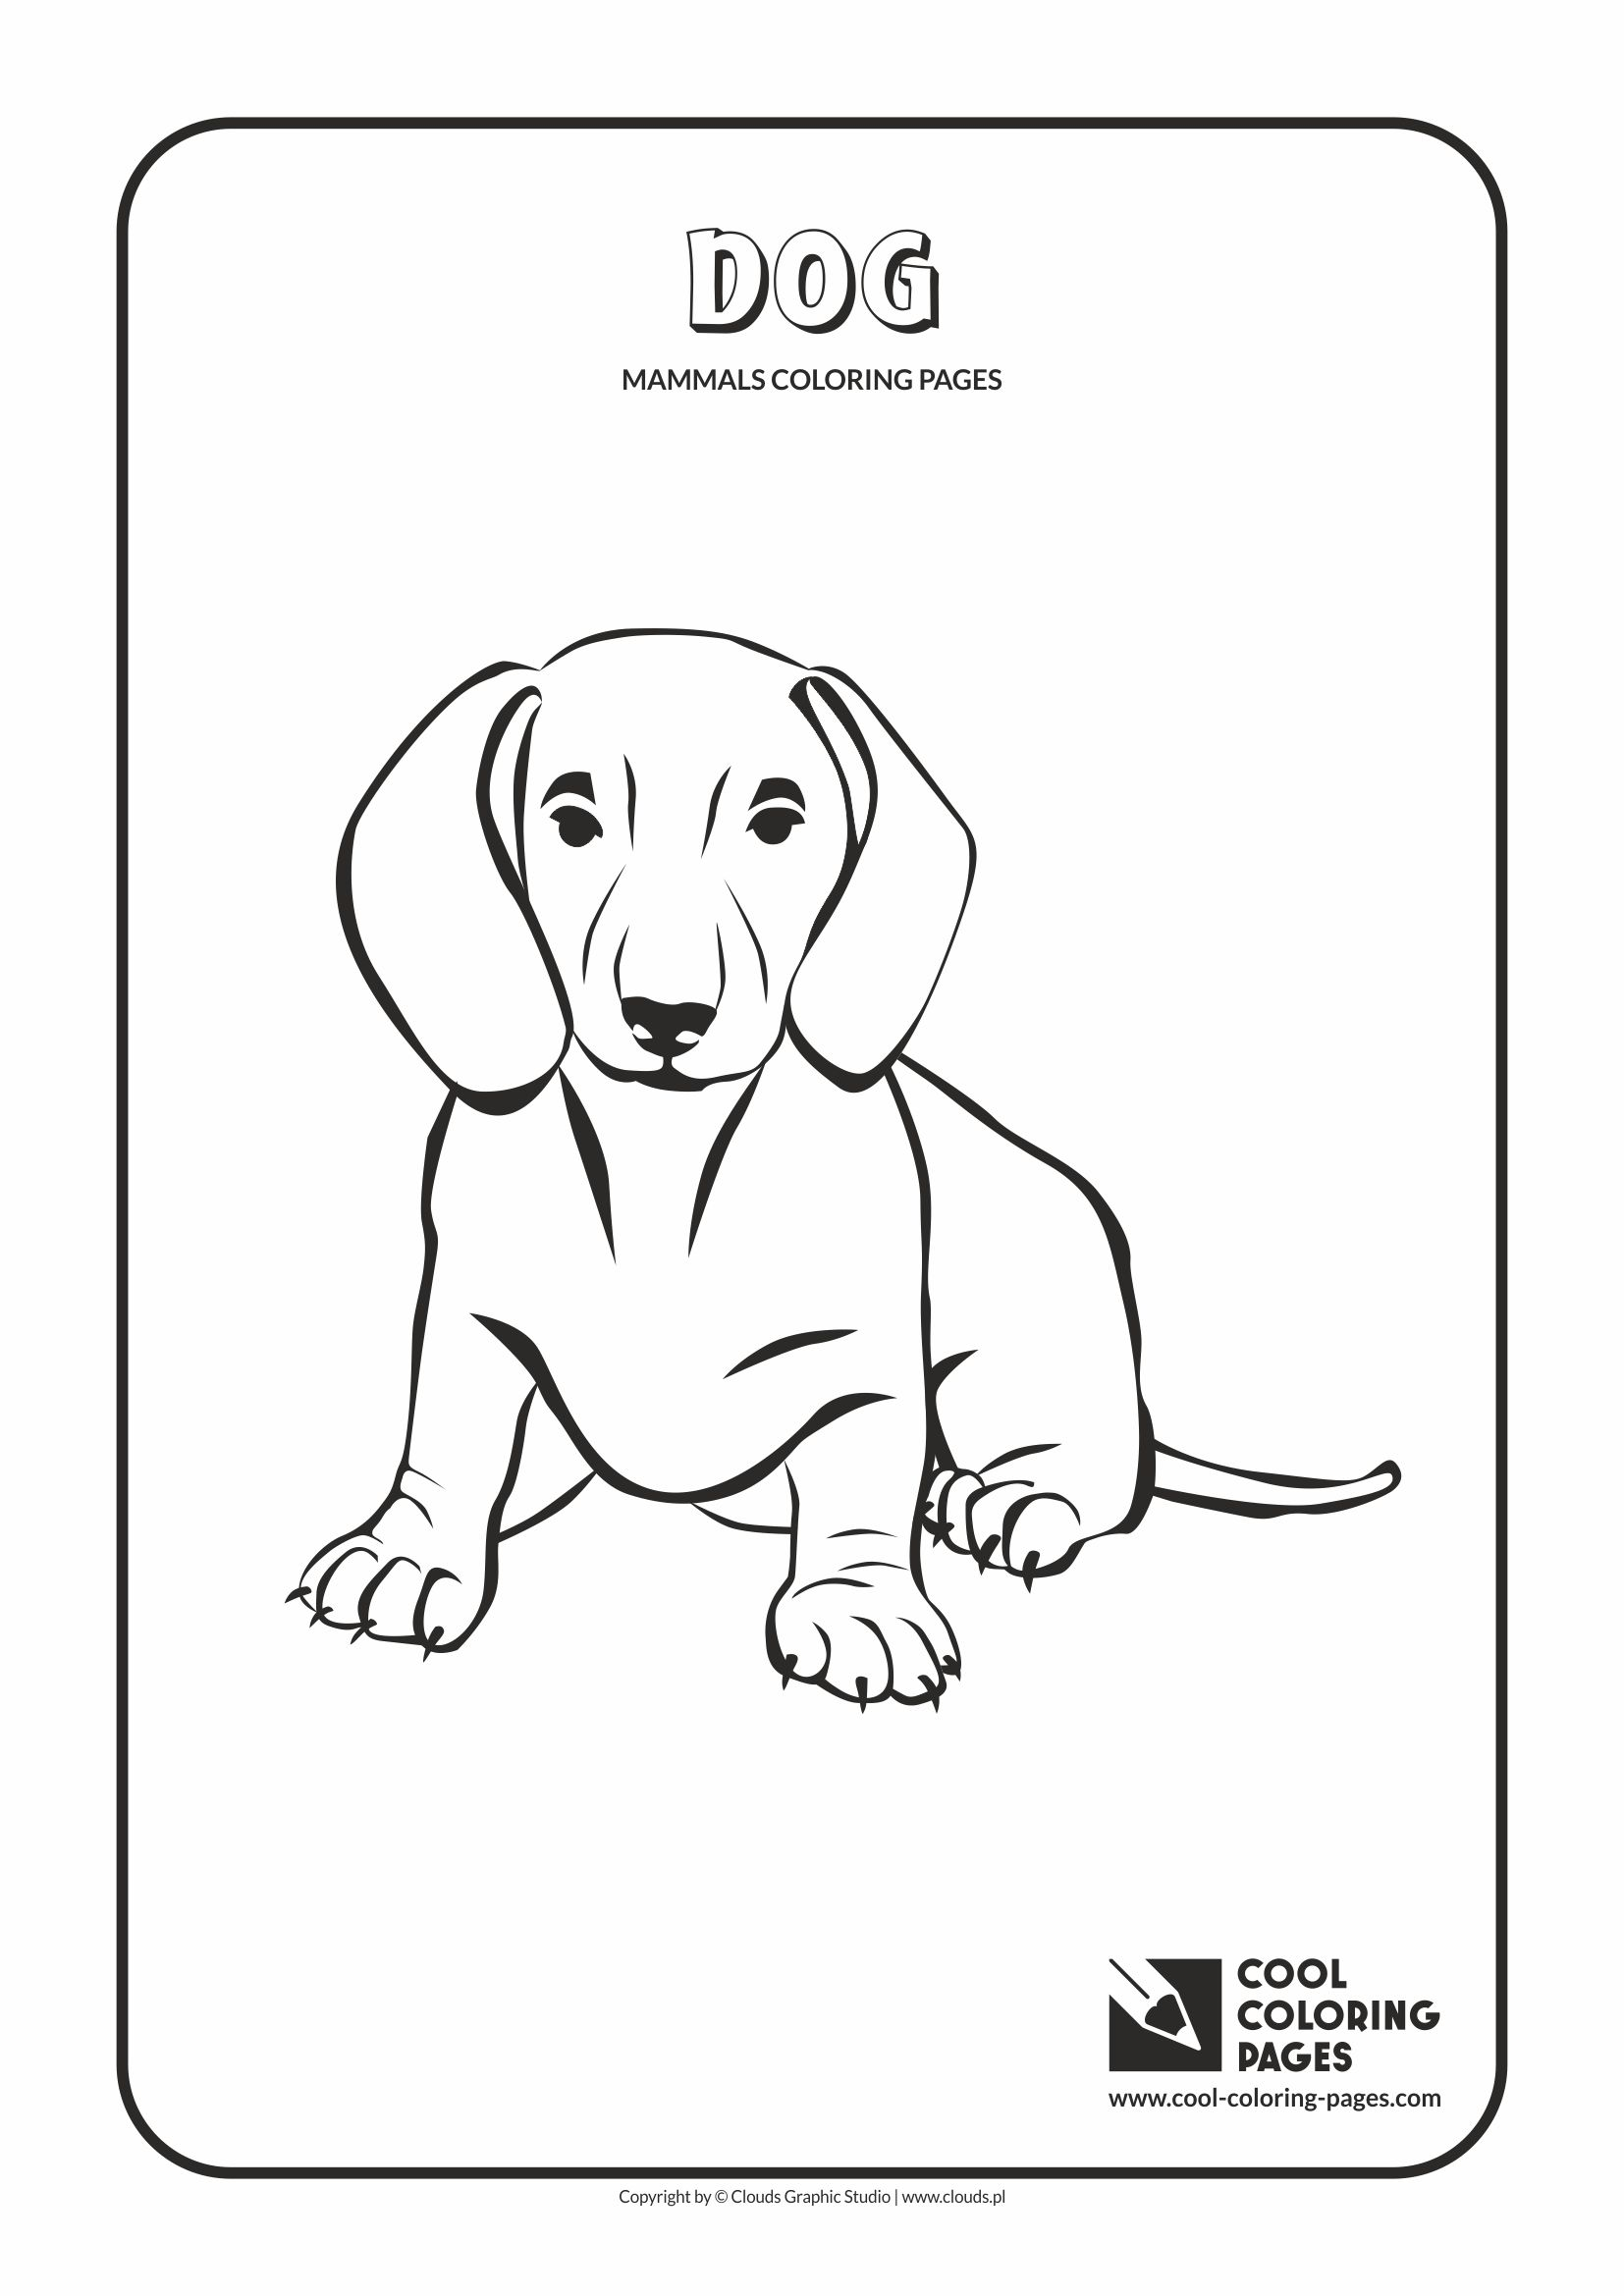 mammals coloring pages - photo#14